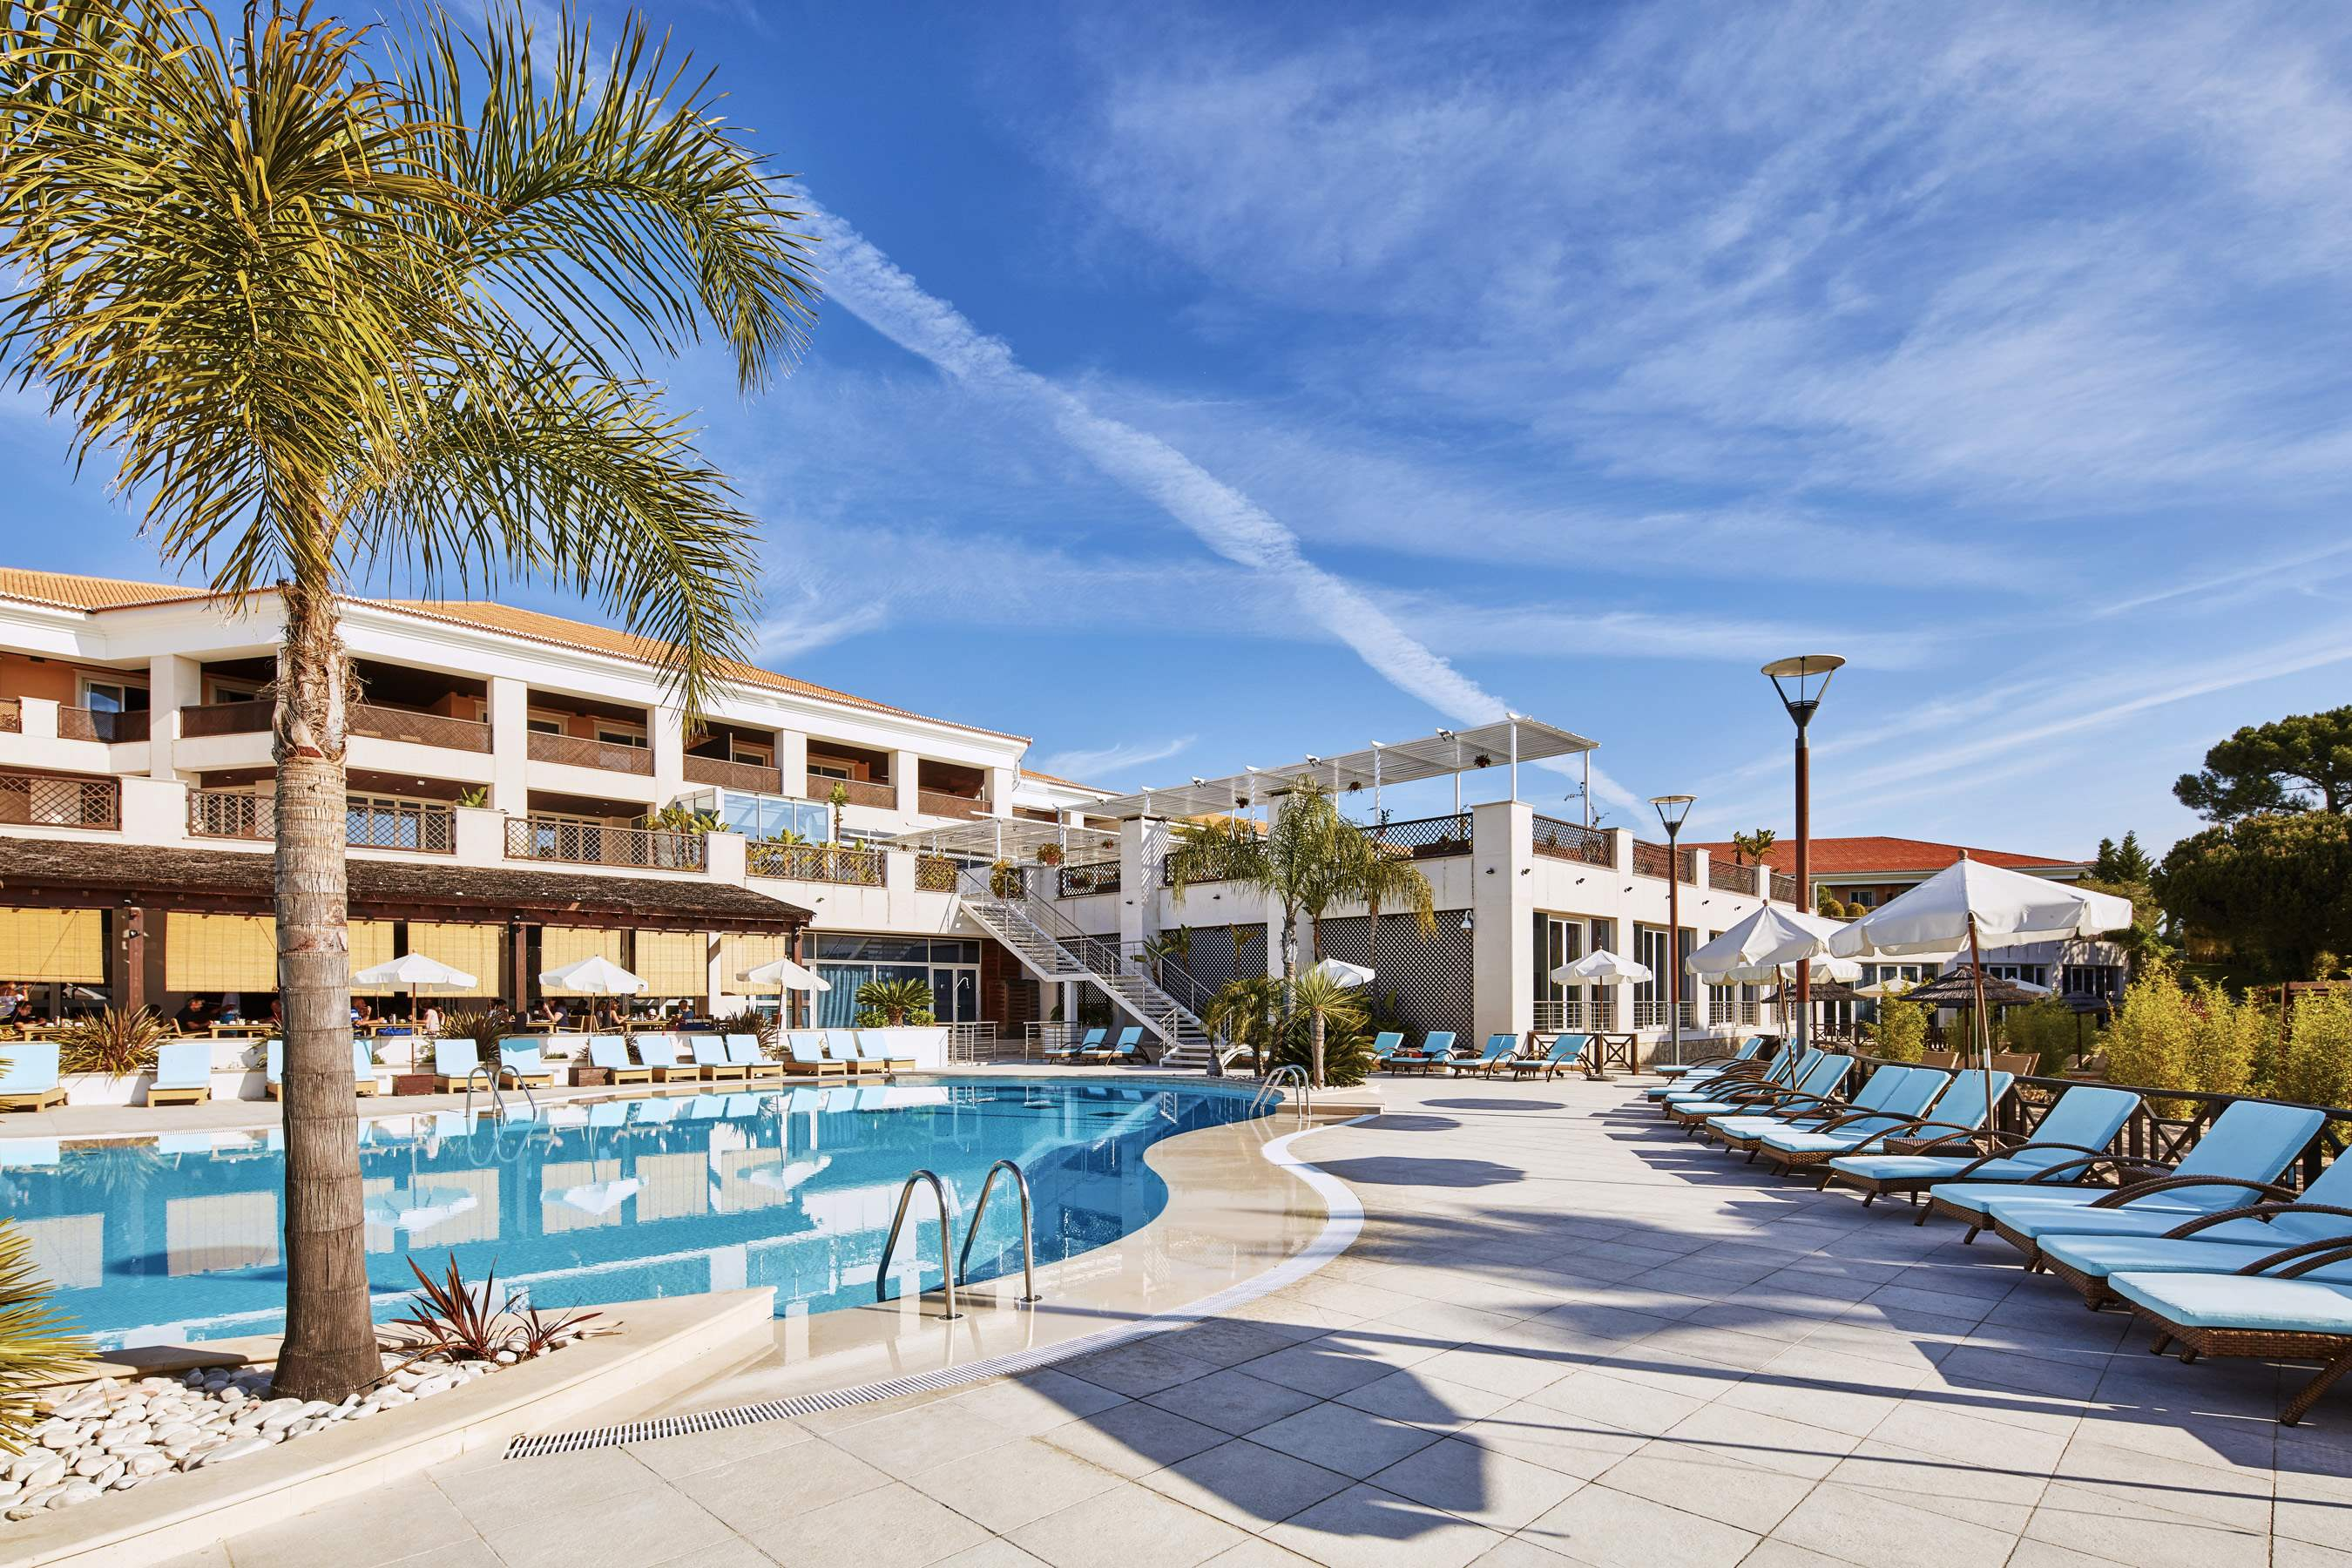 Wyndham Grand Algarve 1 Bedroom, Sunset Suite, Room Only, 1 bedroom apartment in Wyndham Grand Algarve, Algarve Photo #1